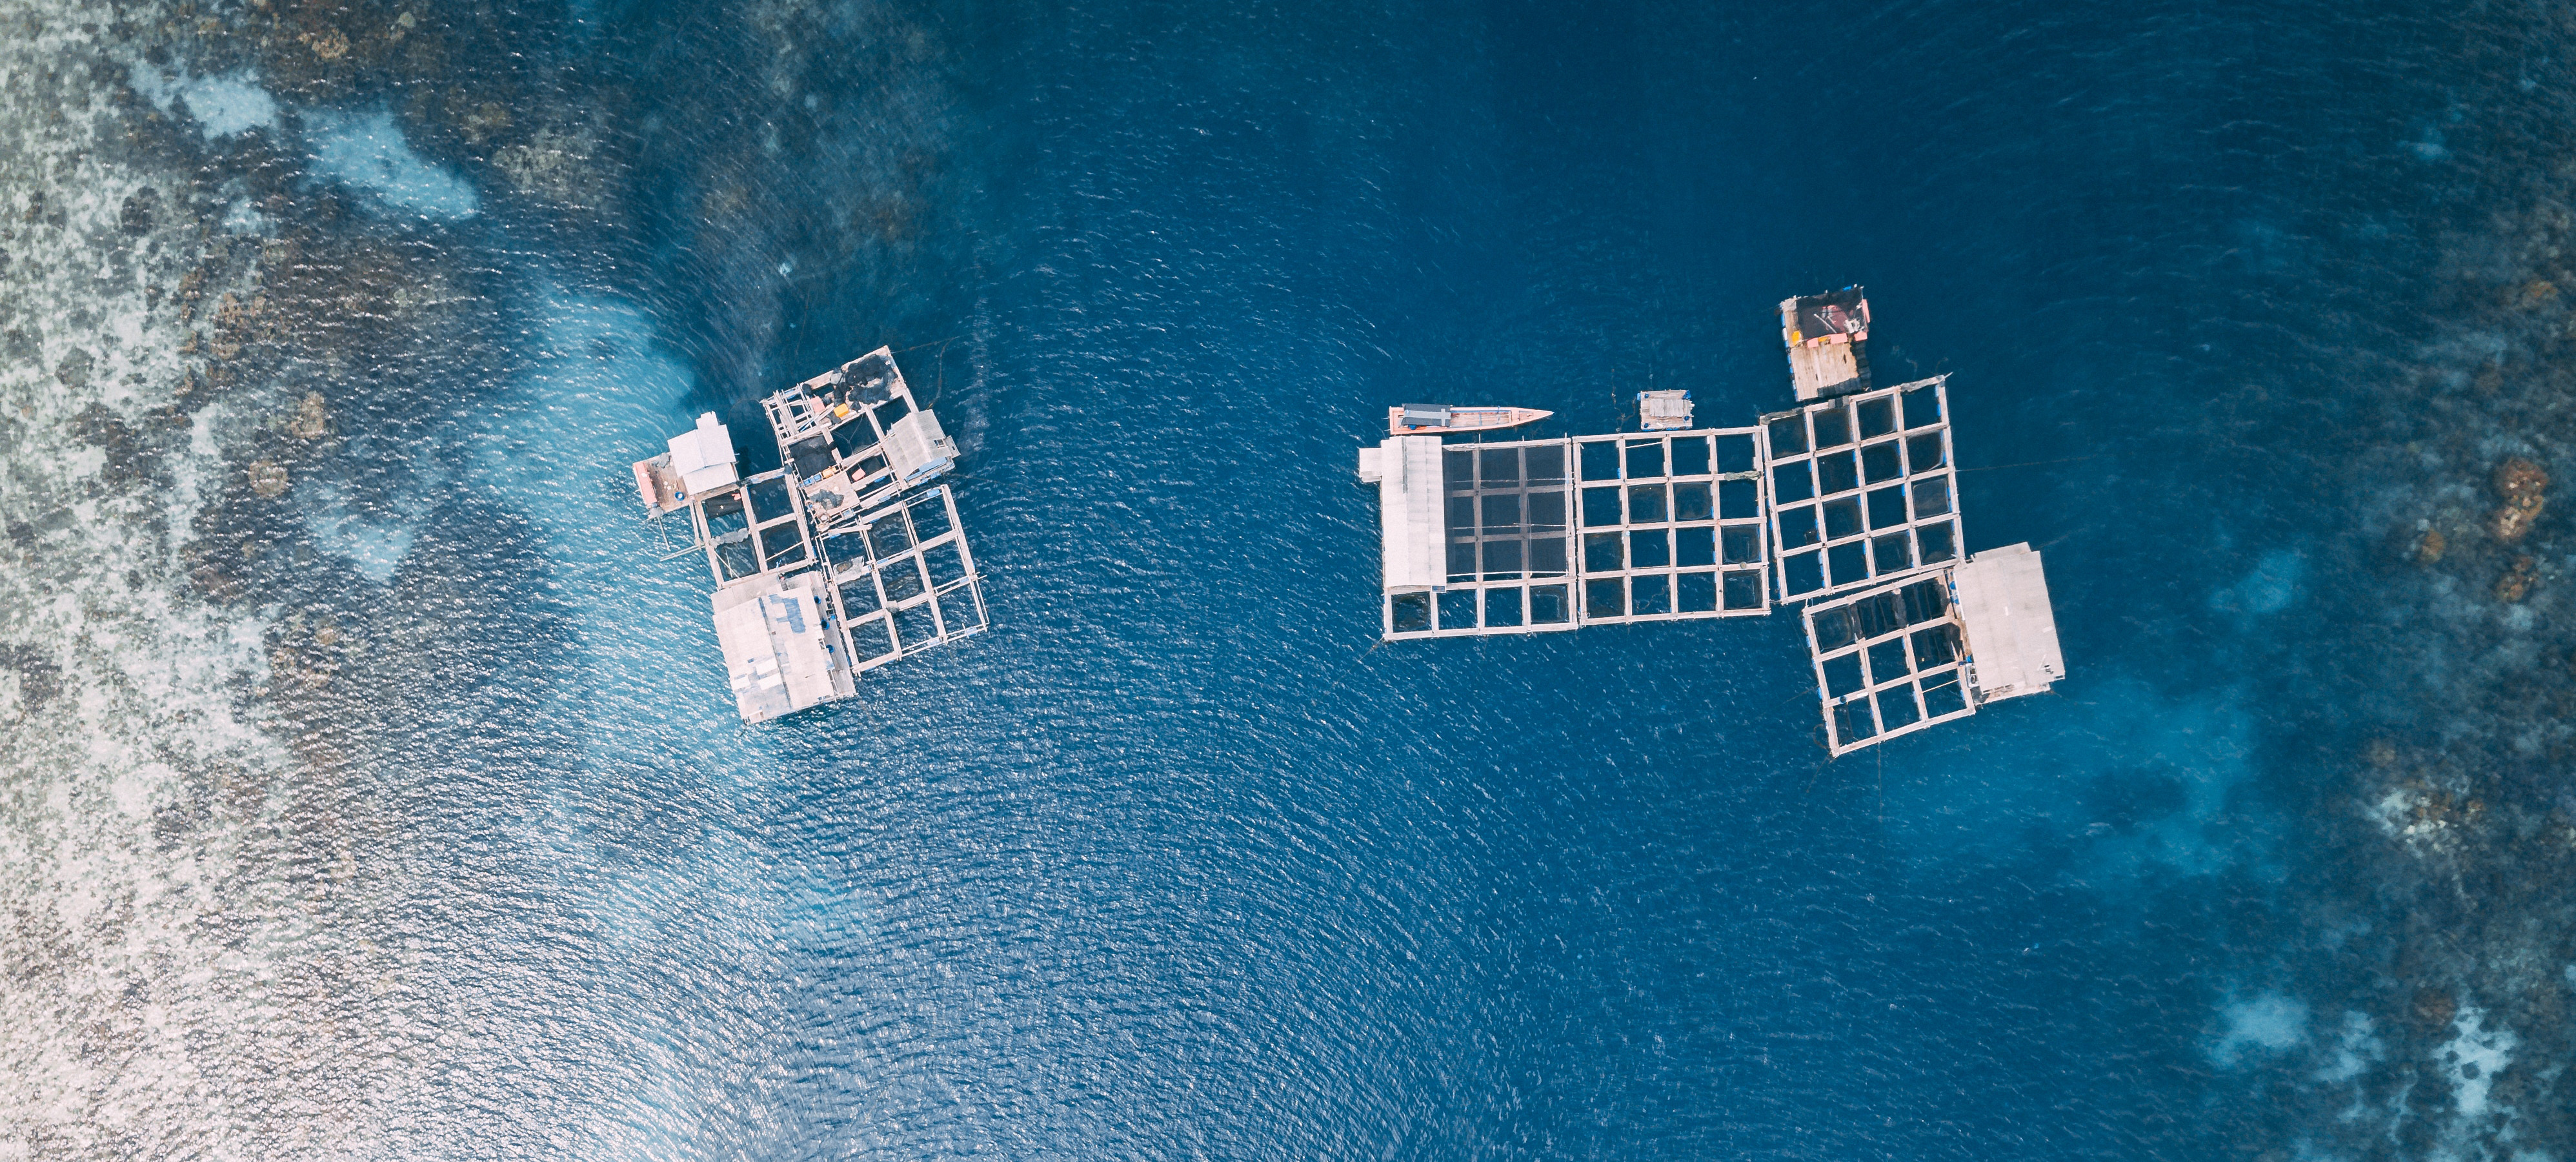 Aquaculture in Spain is a sector on the rise, gaining more weight in our economy each year and emerging as one of the industries achieving sustainable.